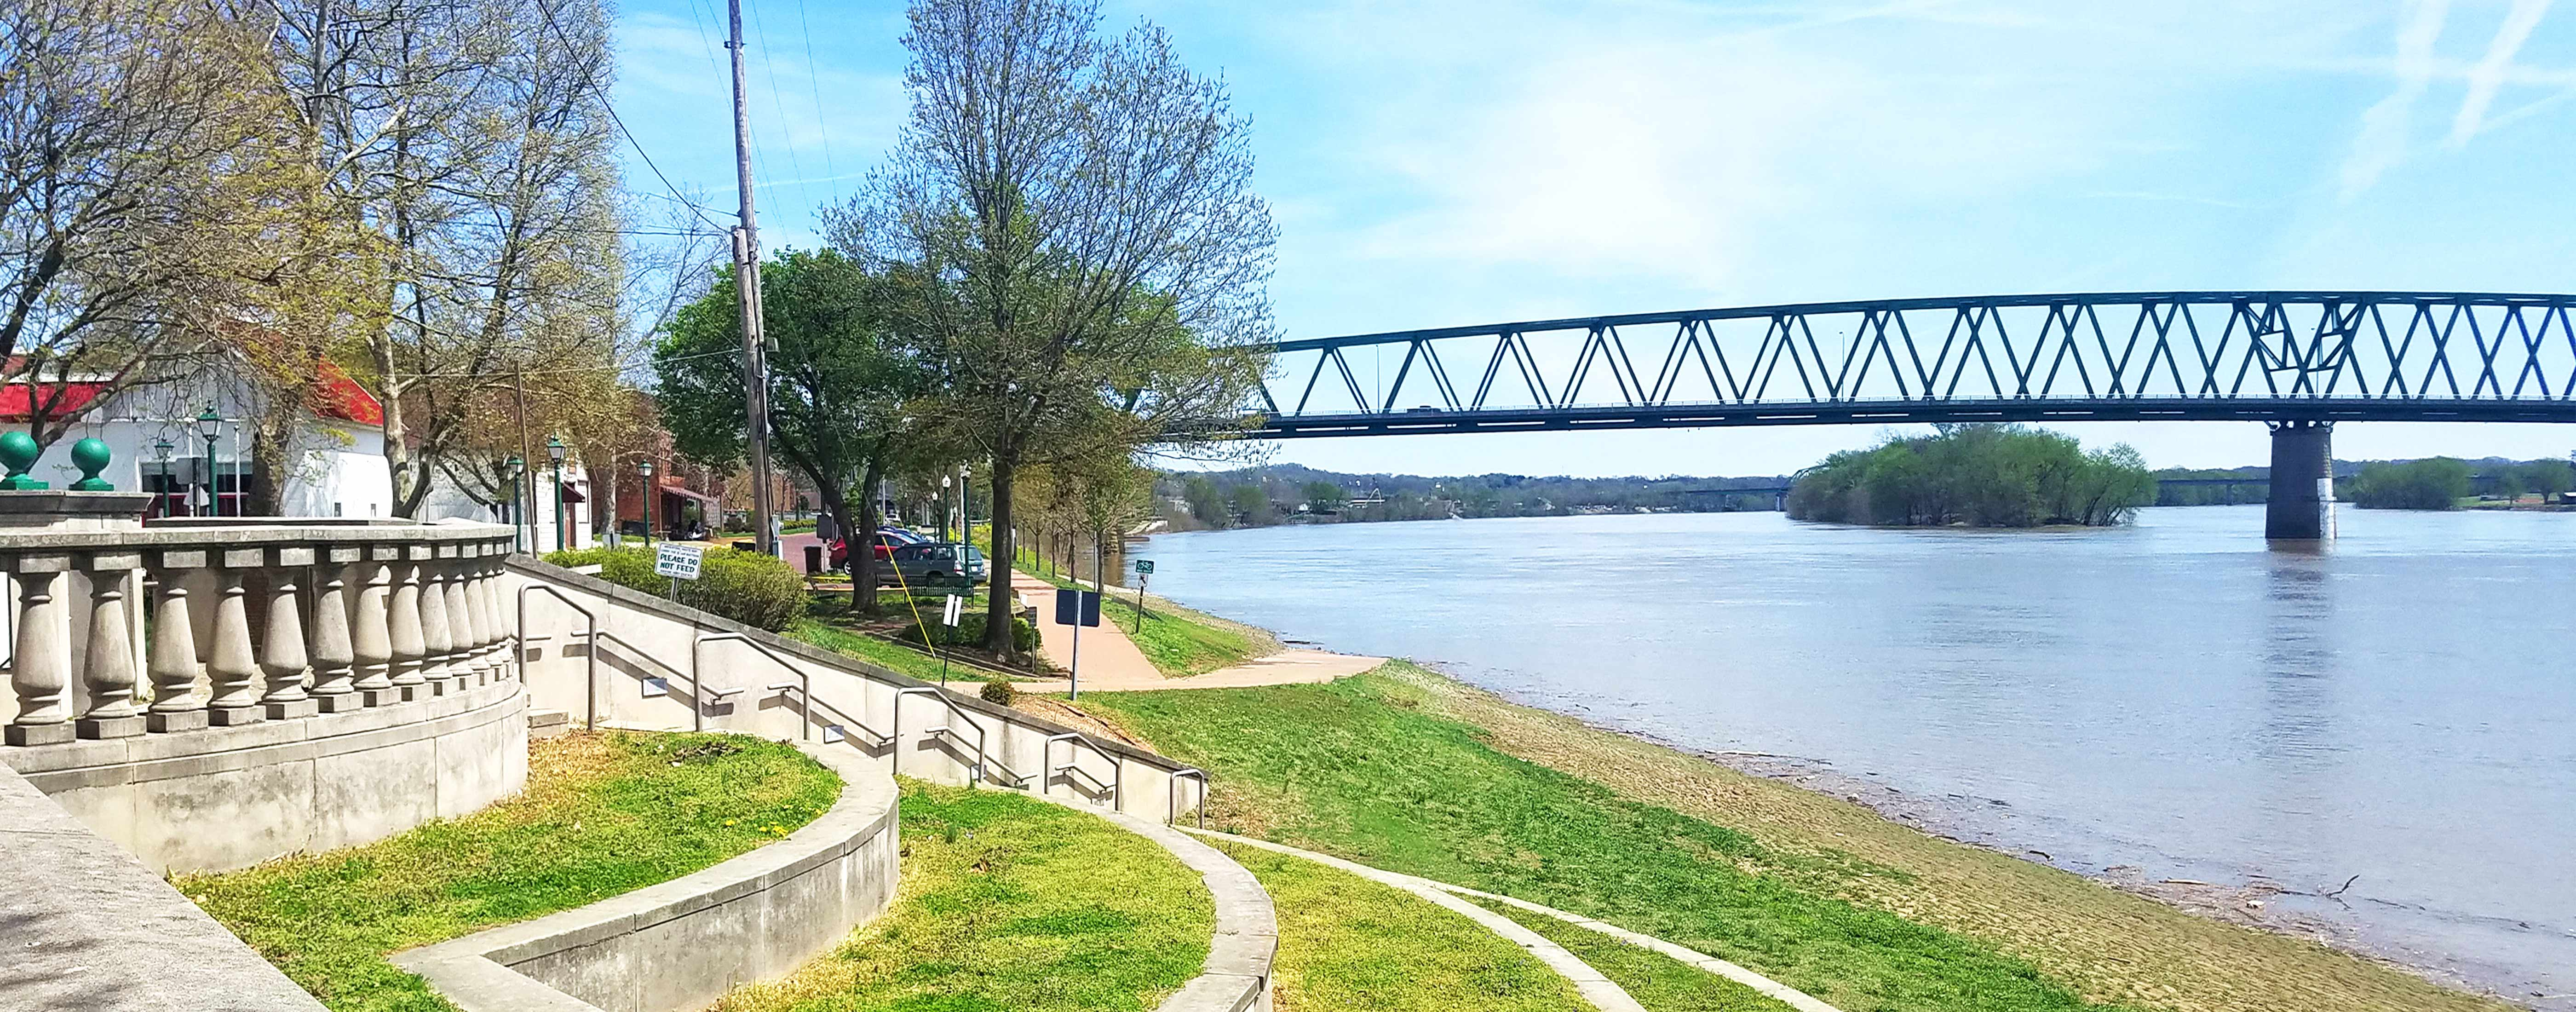 A beautiful view of the Downtown Marietta, Ohio riverfront.